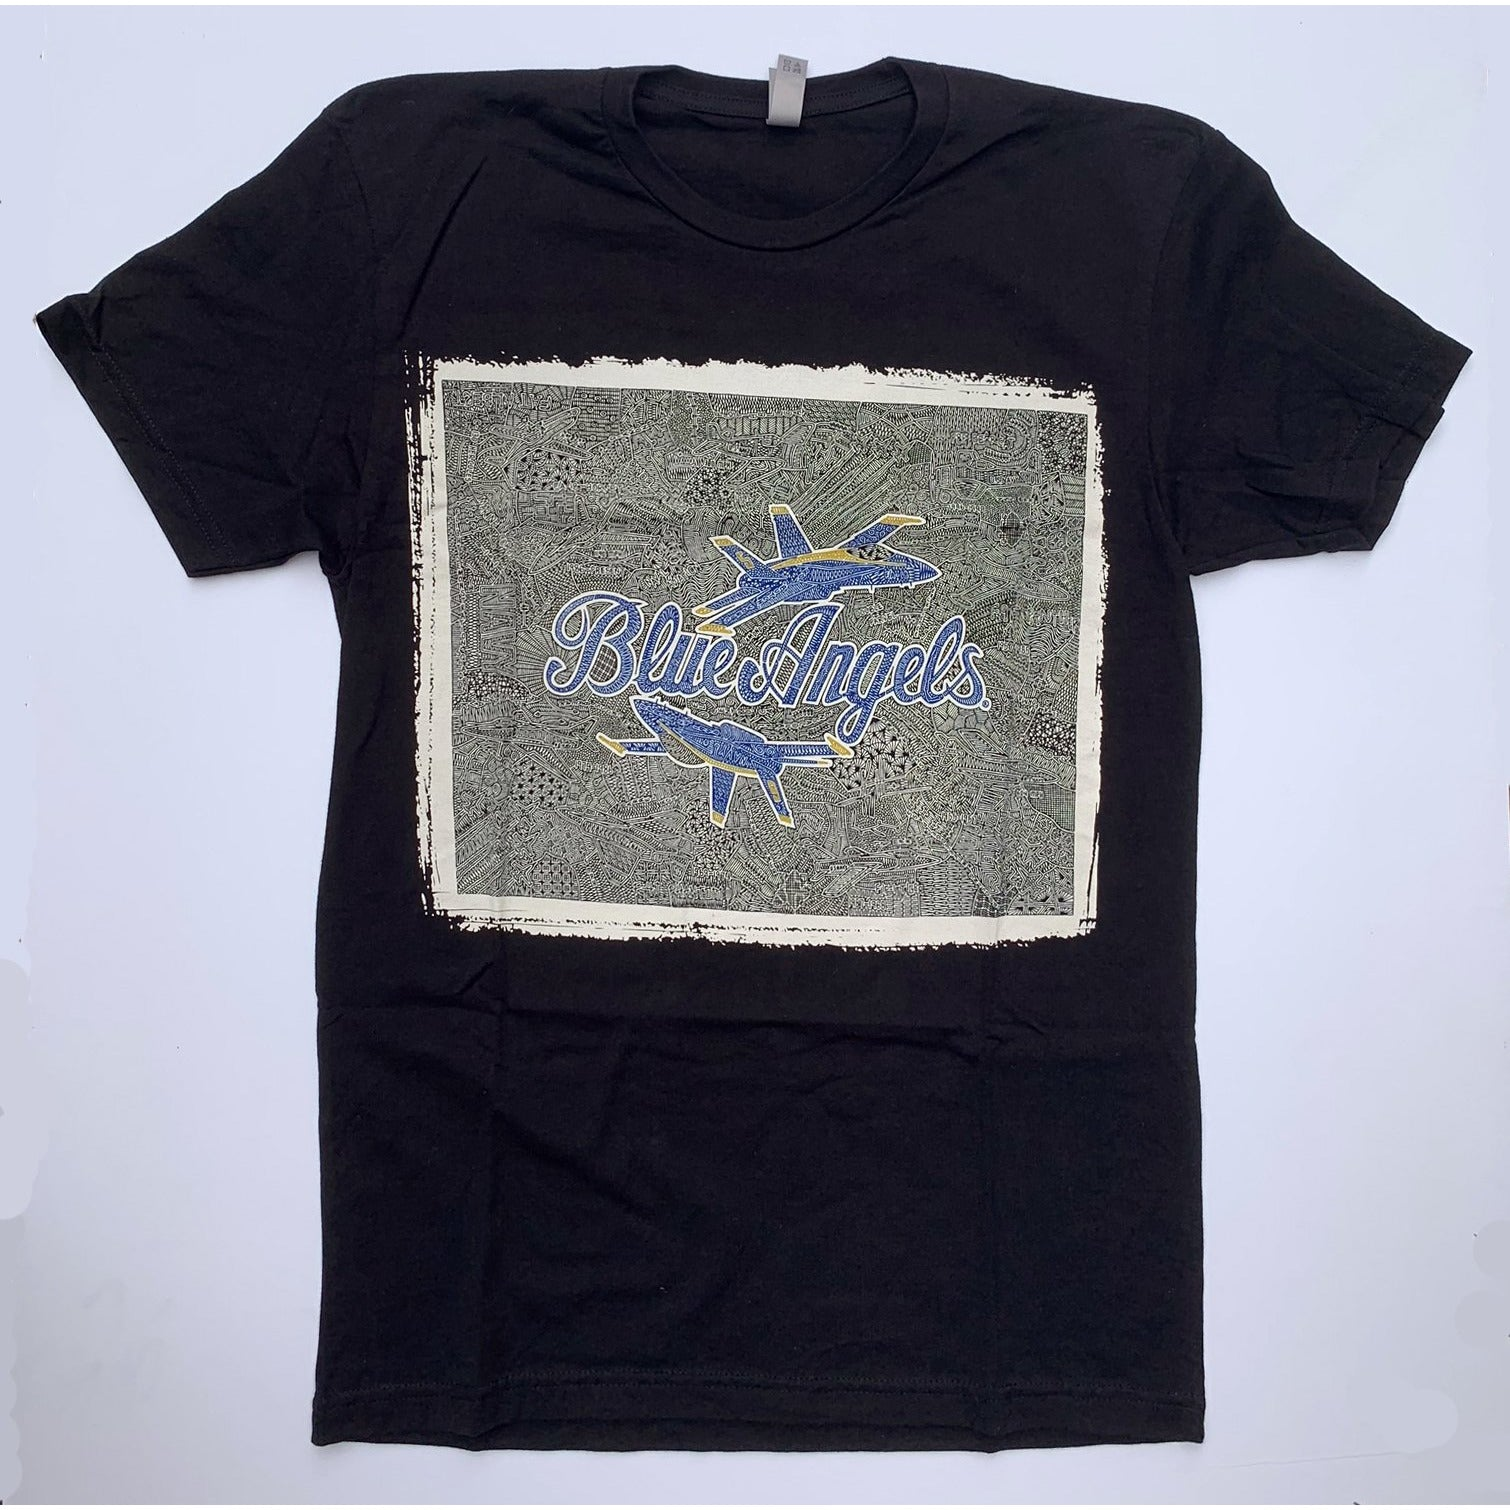 T-Shirt - Blue Angels (Navy & Black)